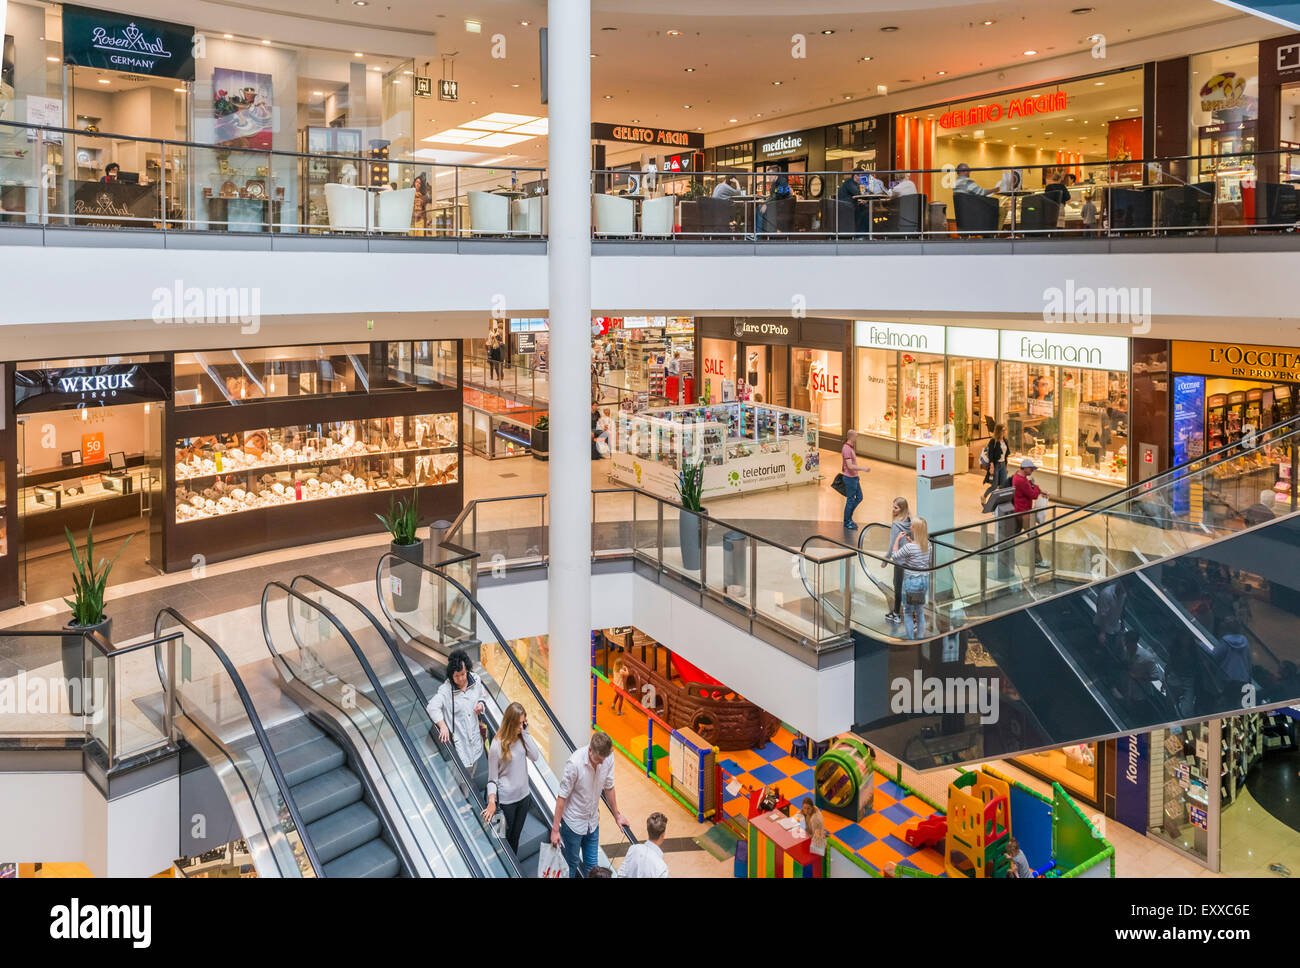 Galeria Baltycka, Gdansk's largest shopping mall, Gdansk, Poland, Europe. - Stock Image